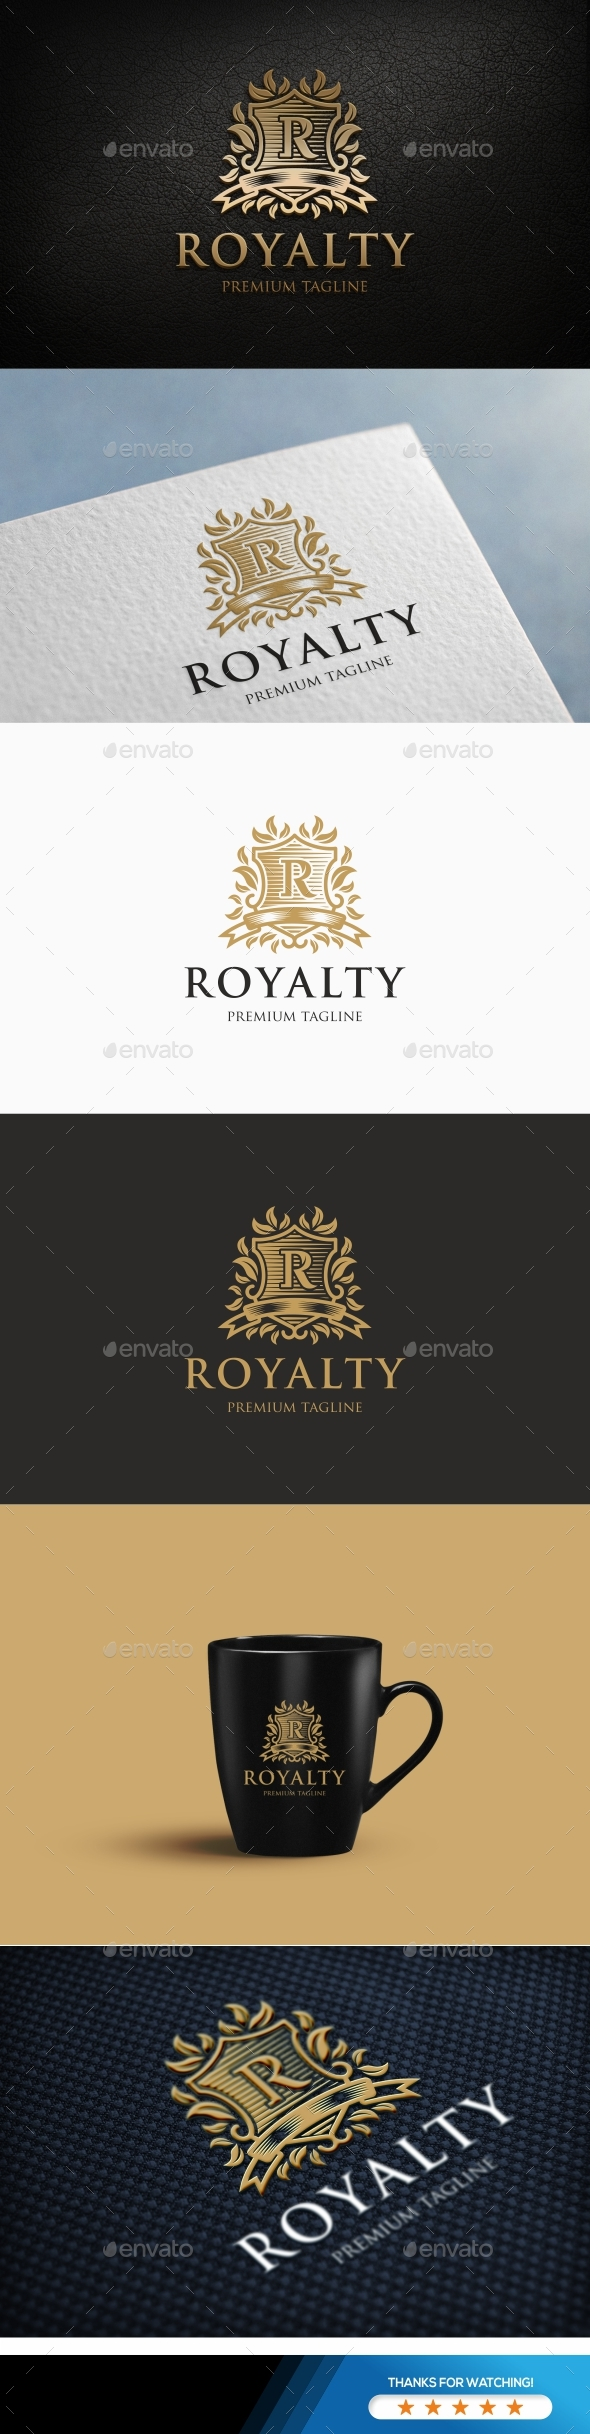 Royalty Logo Template - Letters Logo Templates